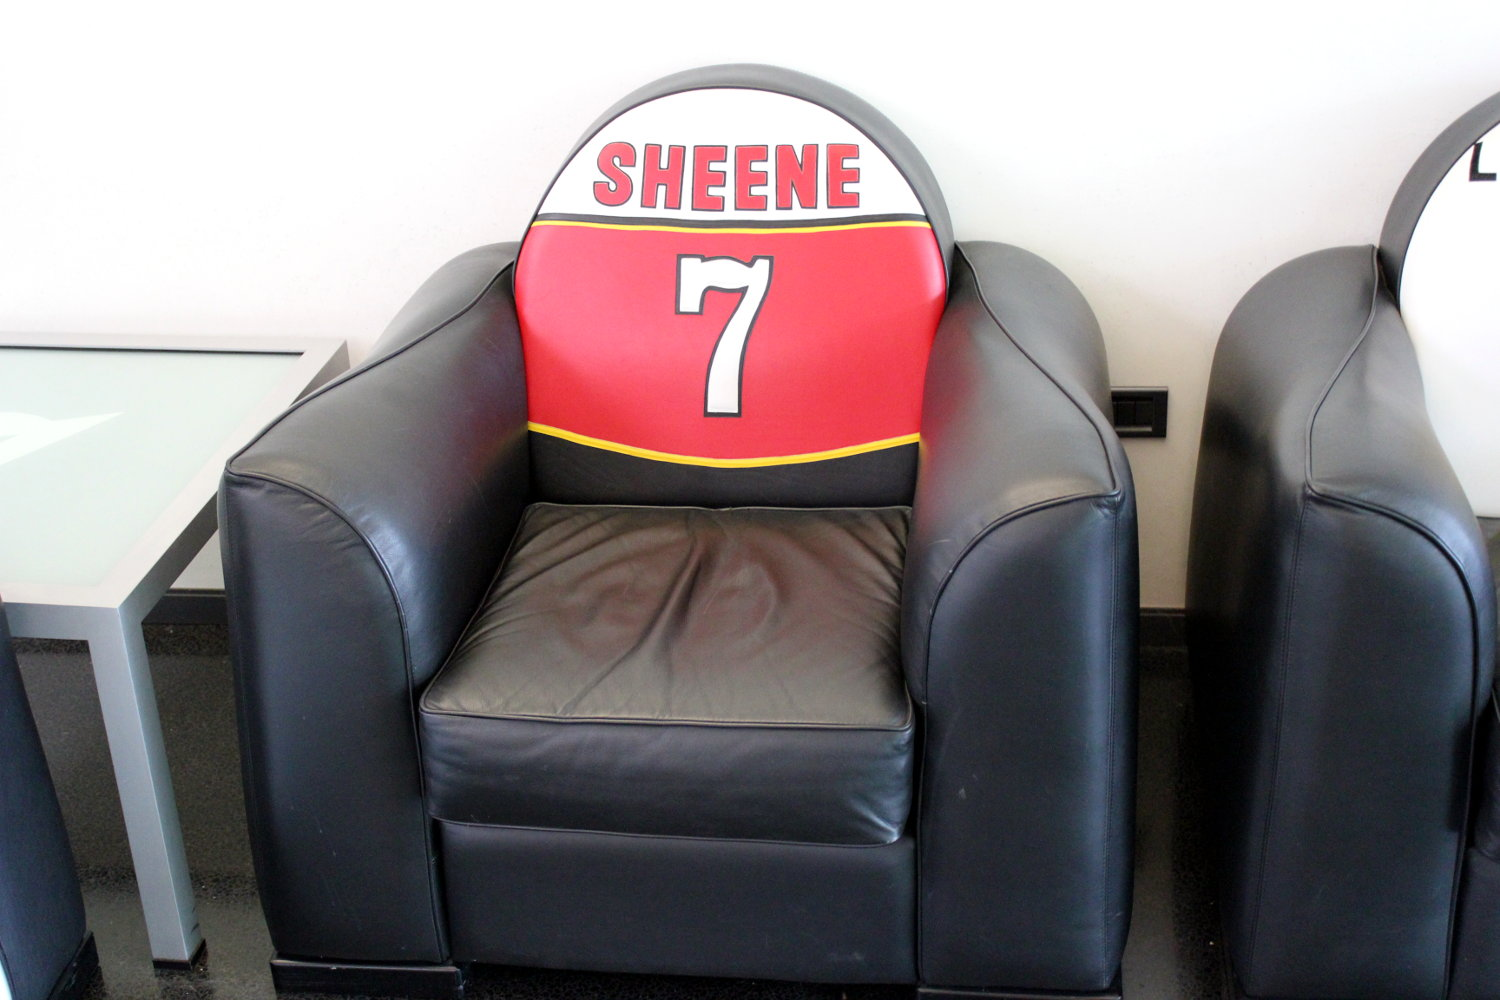 Sillon dainese barry sheene